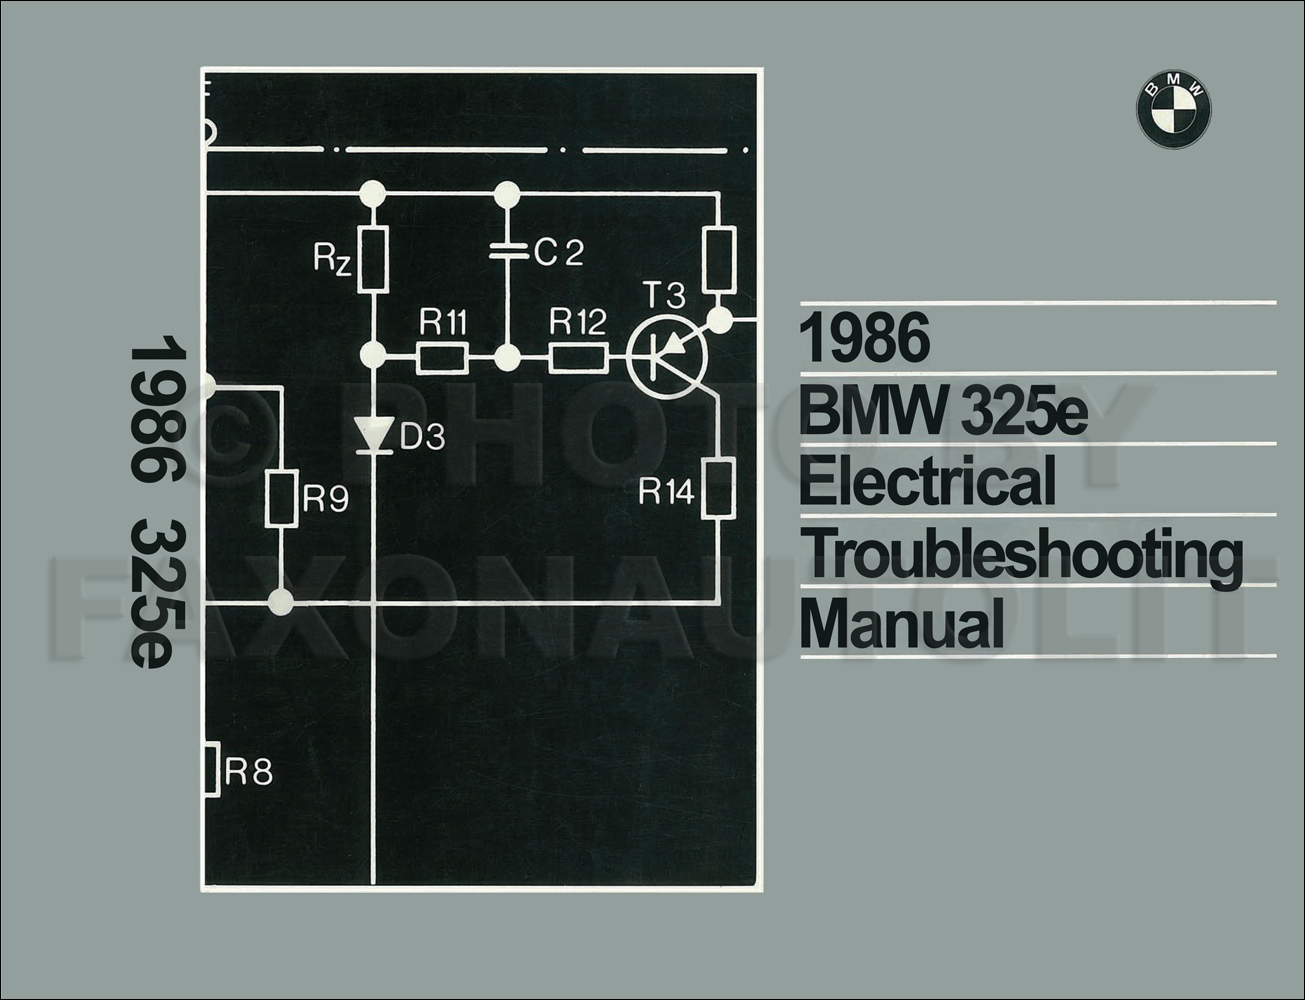 [SCHEMATICS_43NM]  96F04 1986 Bmw 325es Wiring Diagram | Wiring Library | 1986 325e Fuse Box |  | Wiring Library